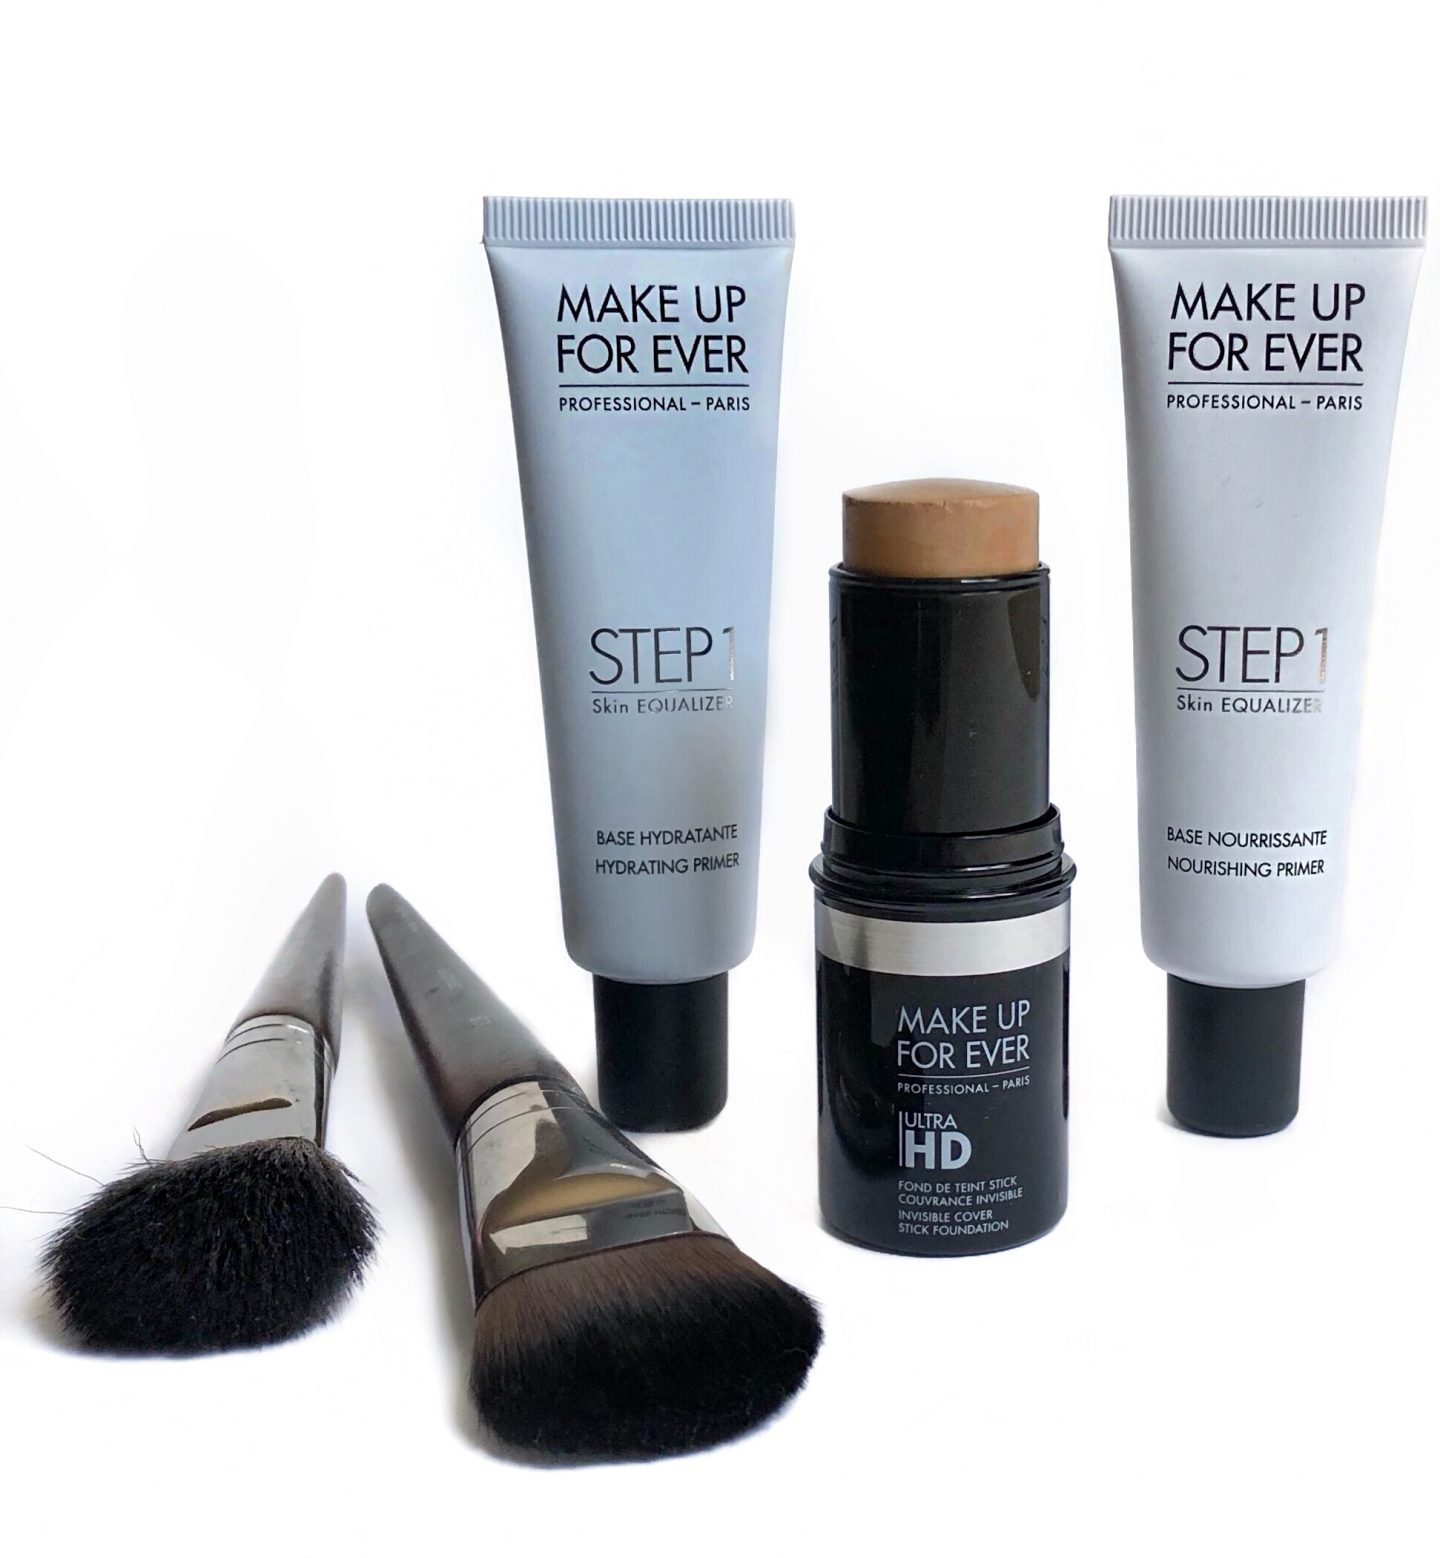 Make Up For Ever Ultra HD Invisible Cover Stick Foundation & Step 1 Skin Equalizer Primers